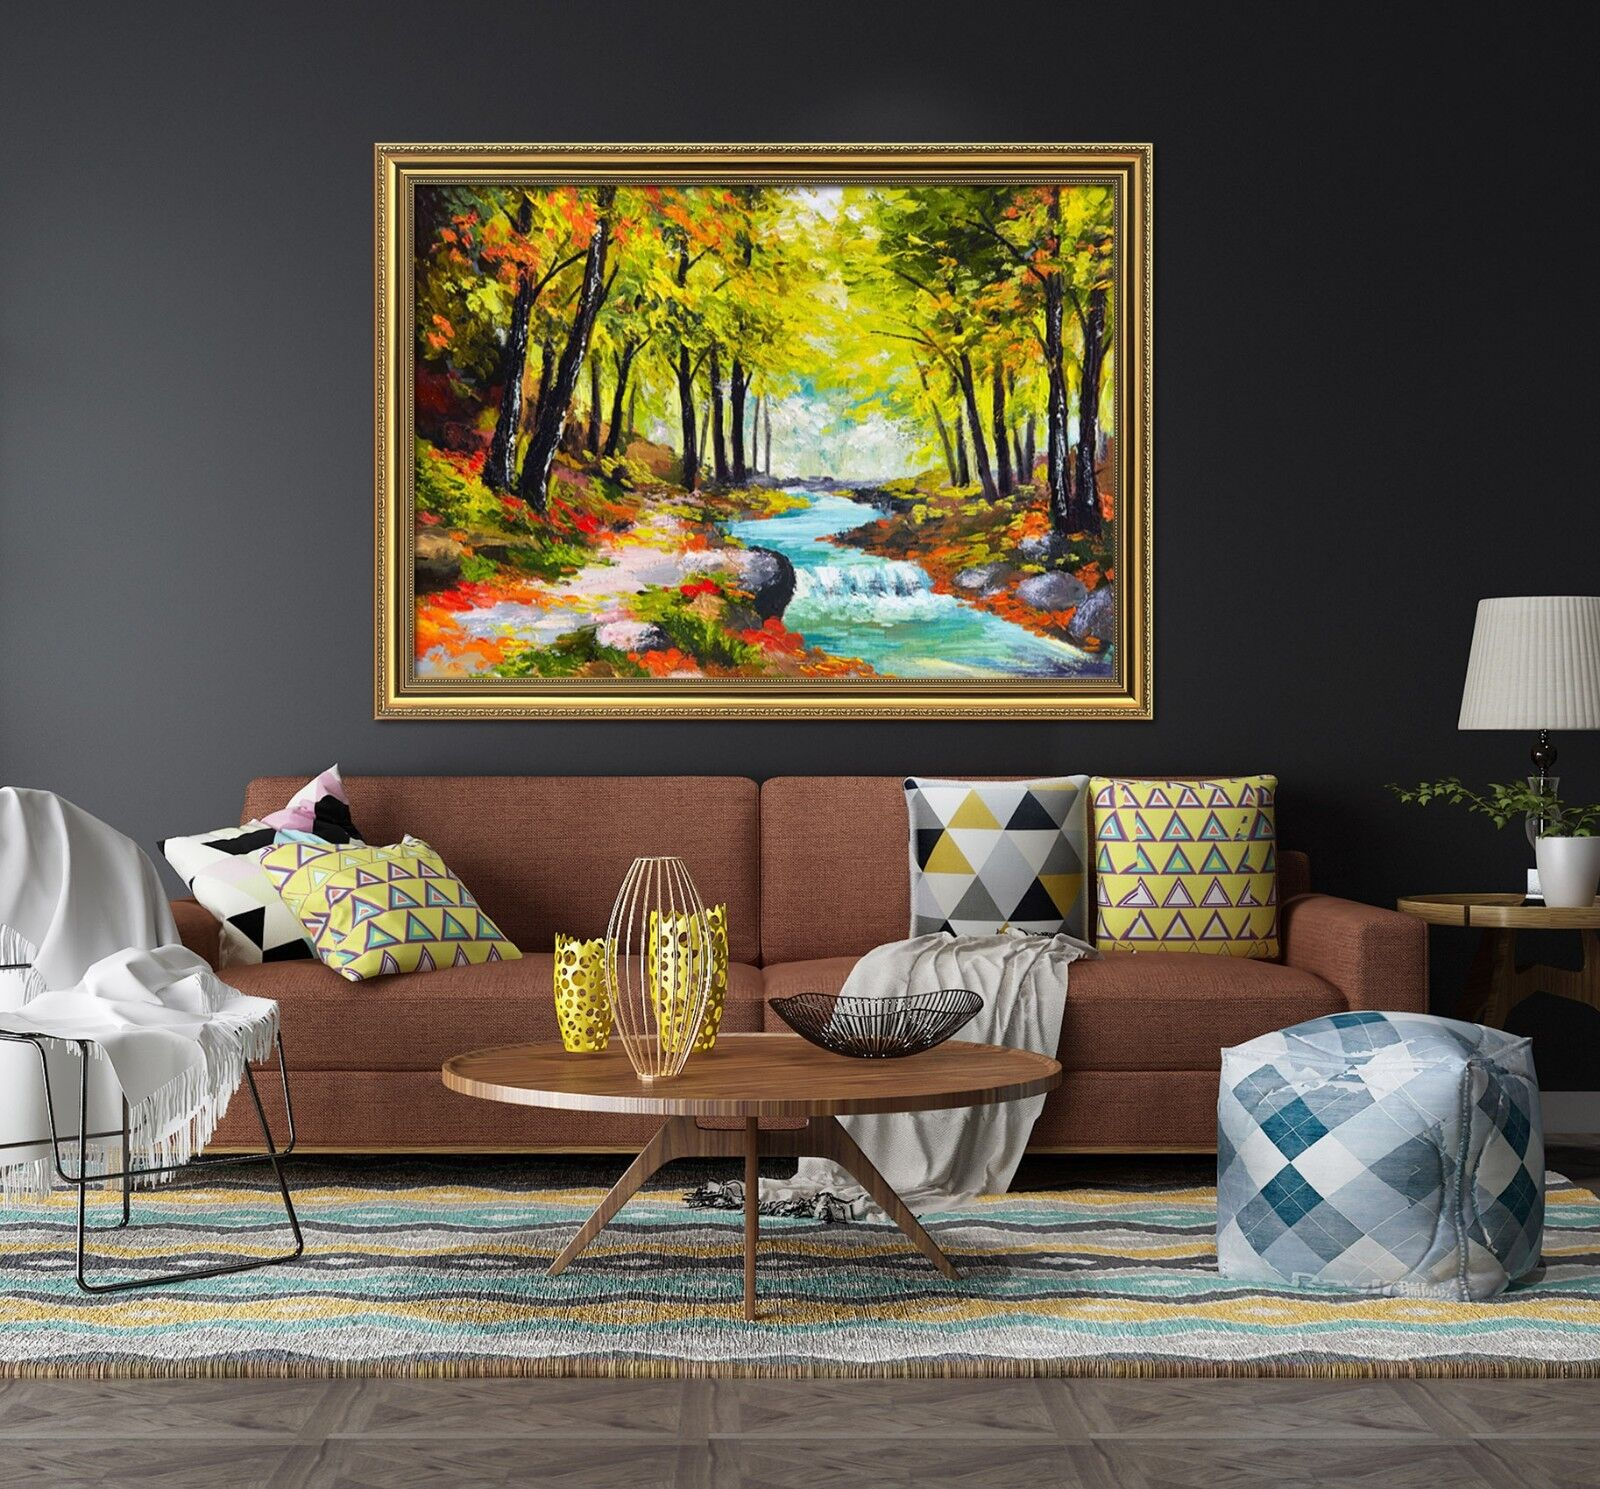 3D Painting Forest Creek 3 Framed Poster Home Decor Print Painting Art WALLPAPER